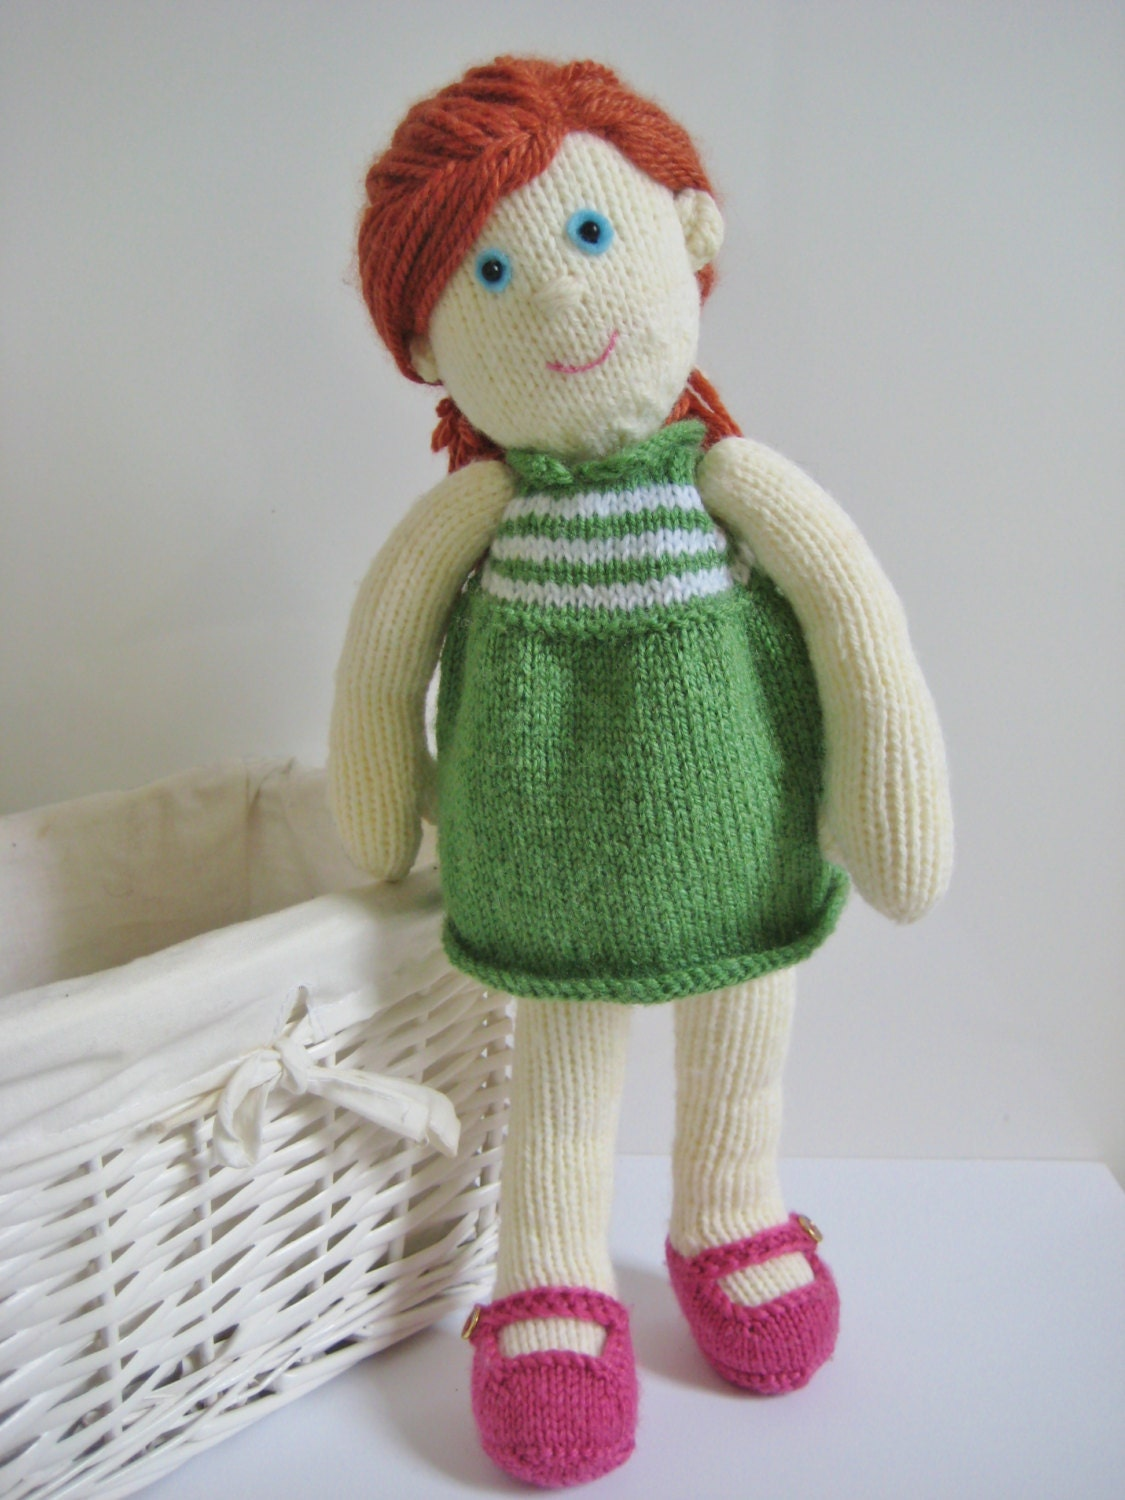 Knitting Patterns For Toys On Etsy : Lily Doll toy knitting pattern by Amanda Berry by fluffandfuzz